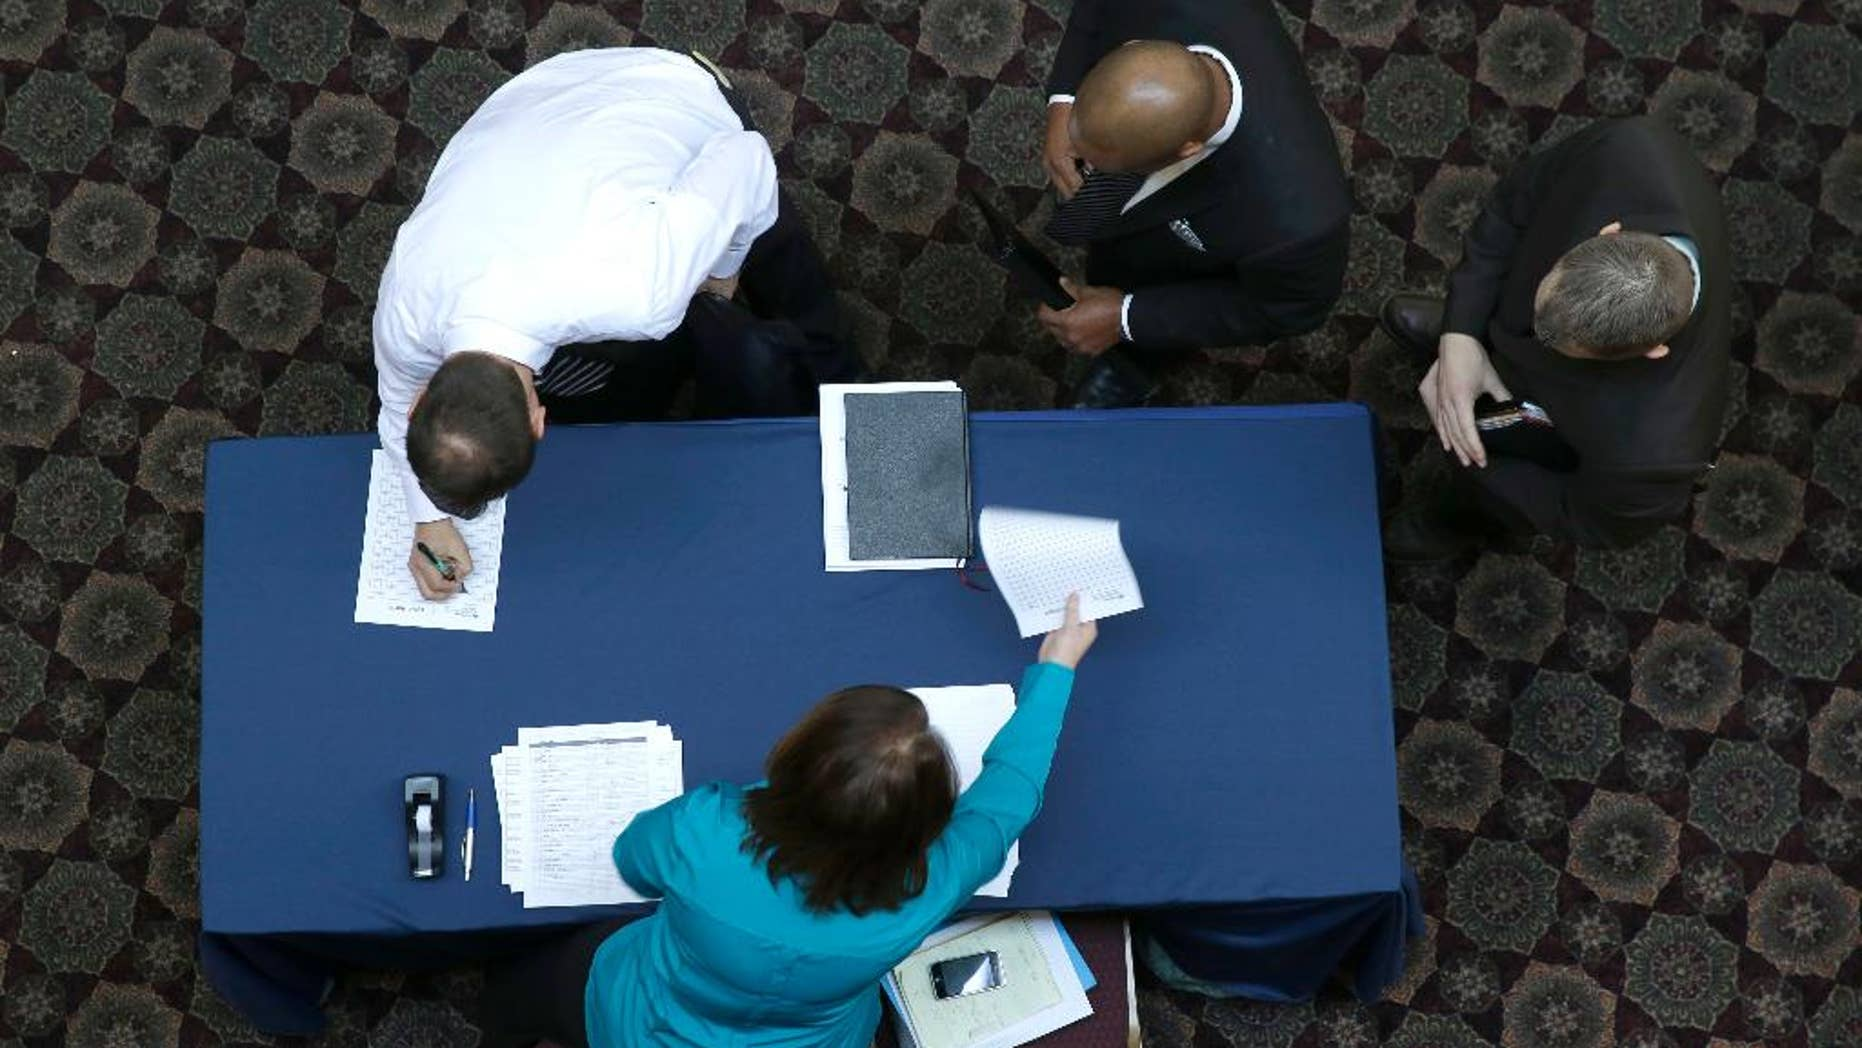 FILE - In this Wednesday, Jan. 22, 2014, file photo, job seekers sign in before meeting prospective employers during a career fair at a hotel in Dallas. Payroll processor ADP reports on job growth at U.S. companies in February, on Wednesday, March 5, 2014.  (AP Photo/LM Otero, File)